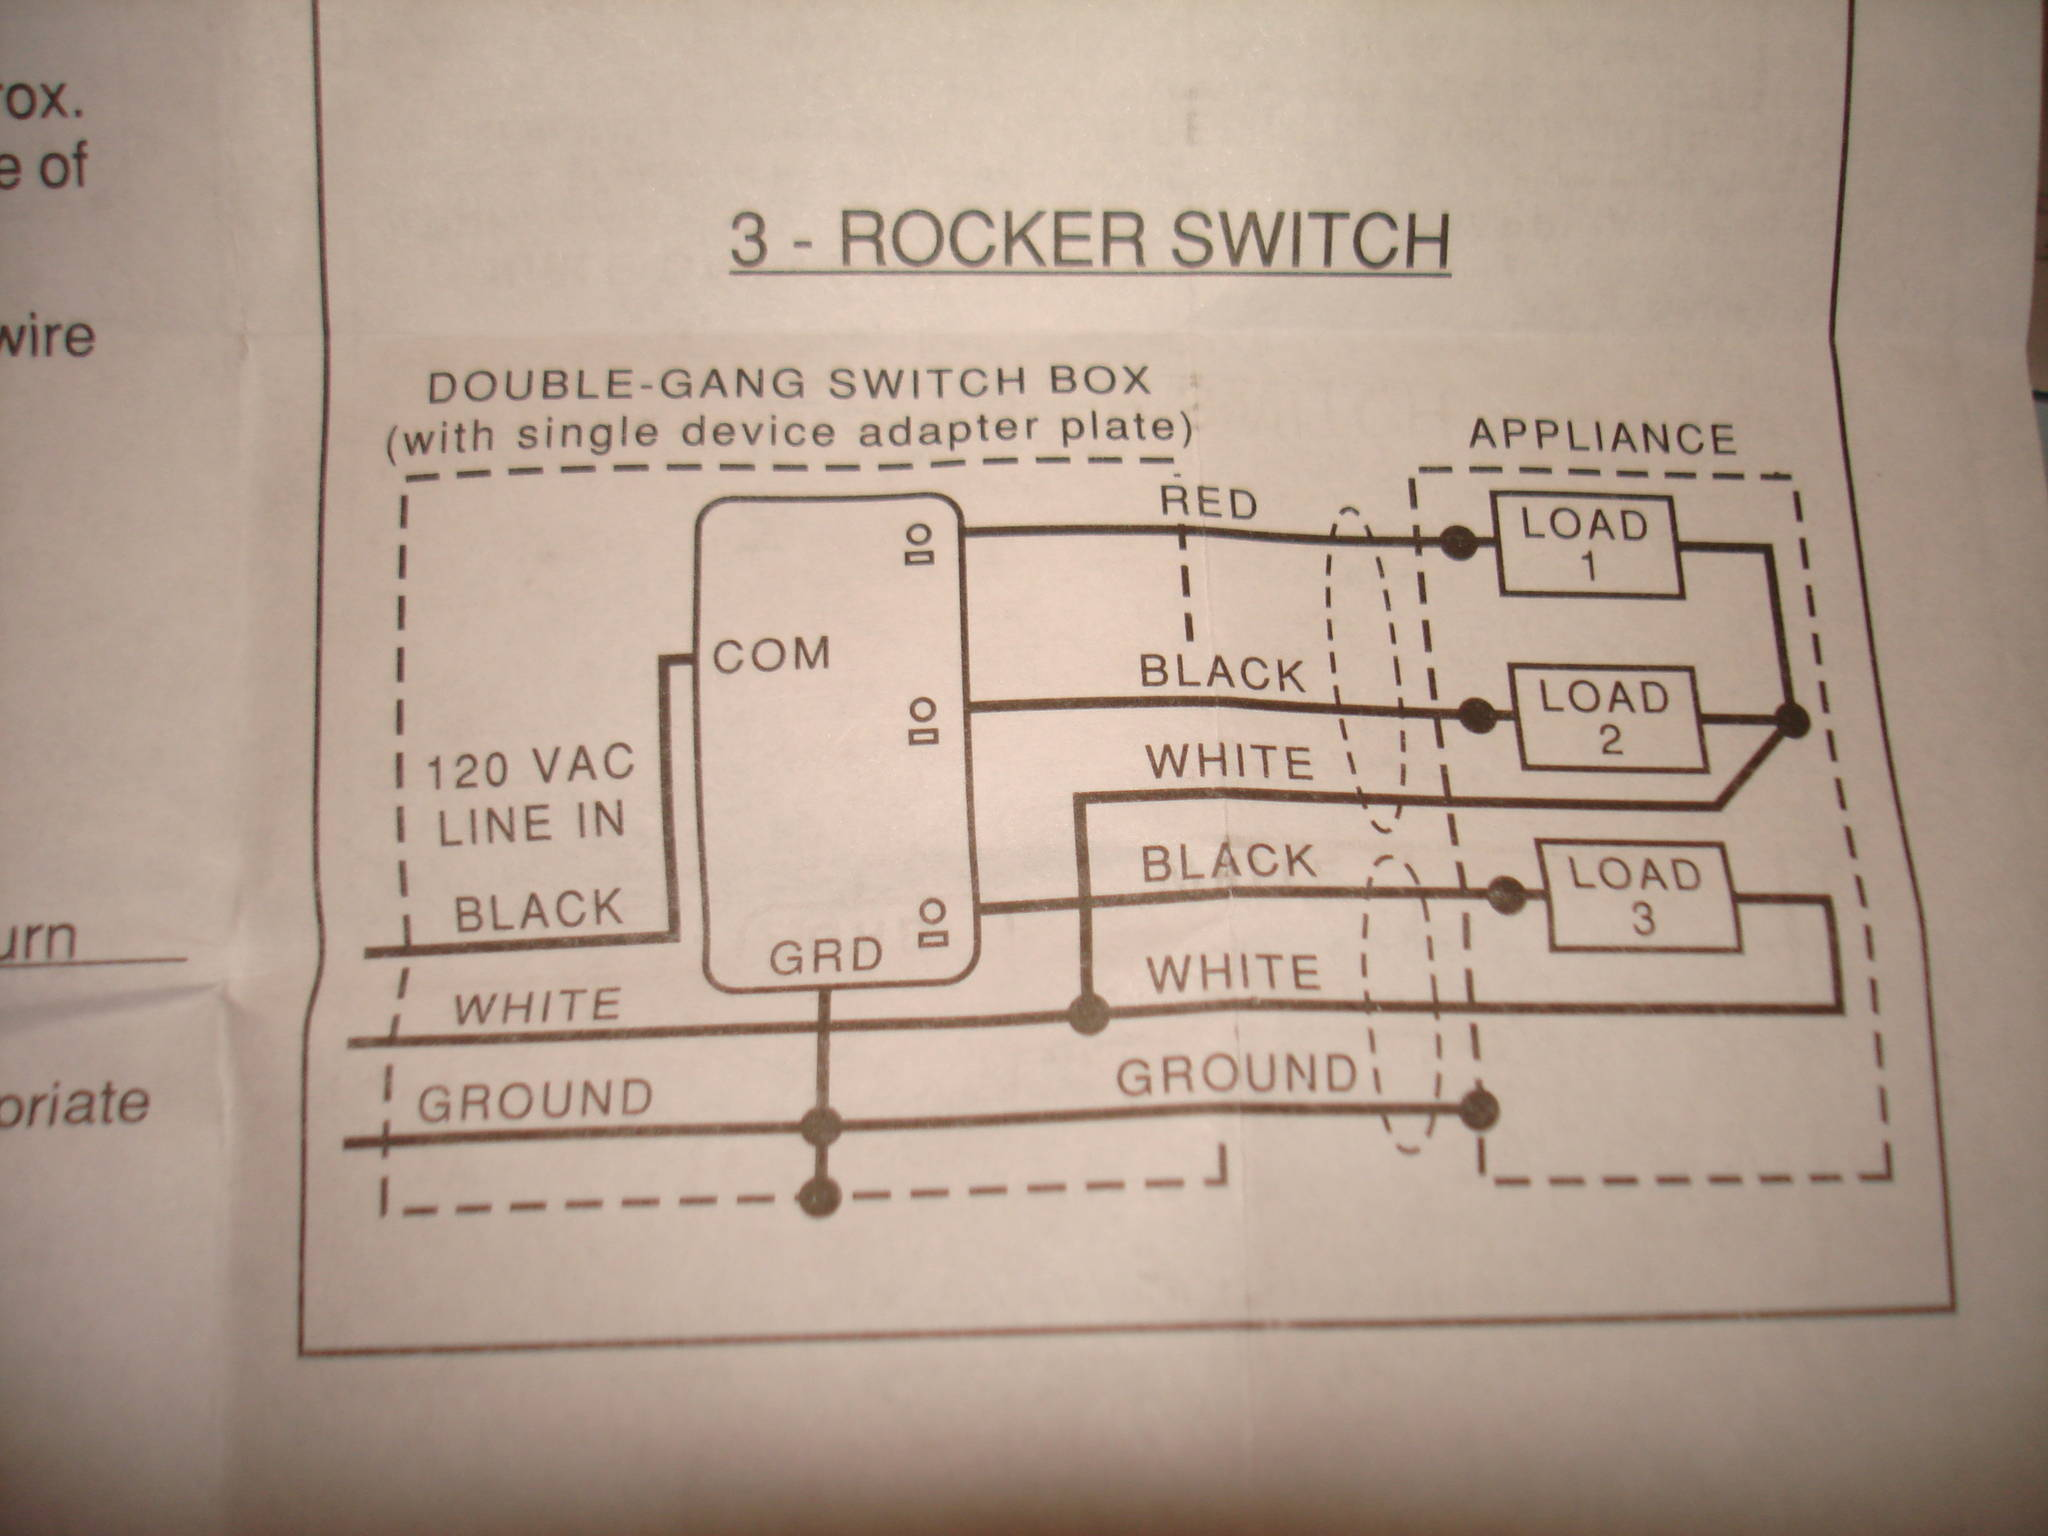 110 Cord Wiring Diagram Help Wiring Squirrel Cage Blower For Flowhood Mushroom